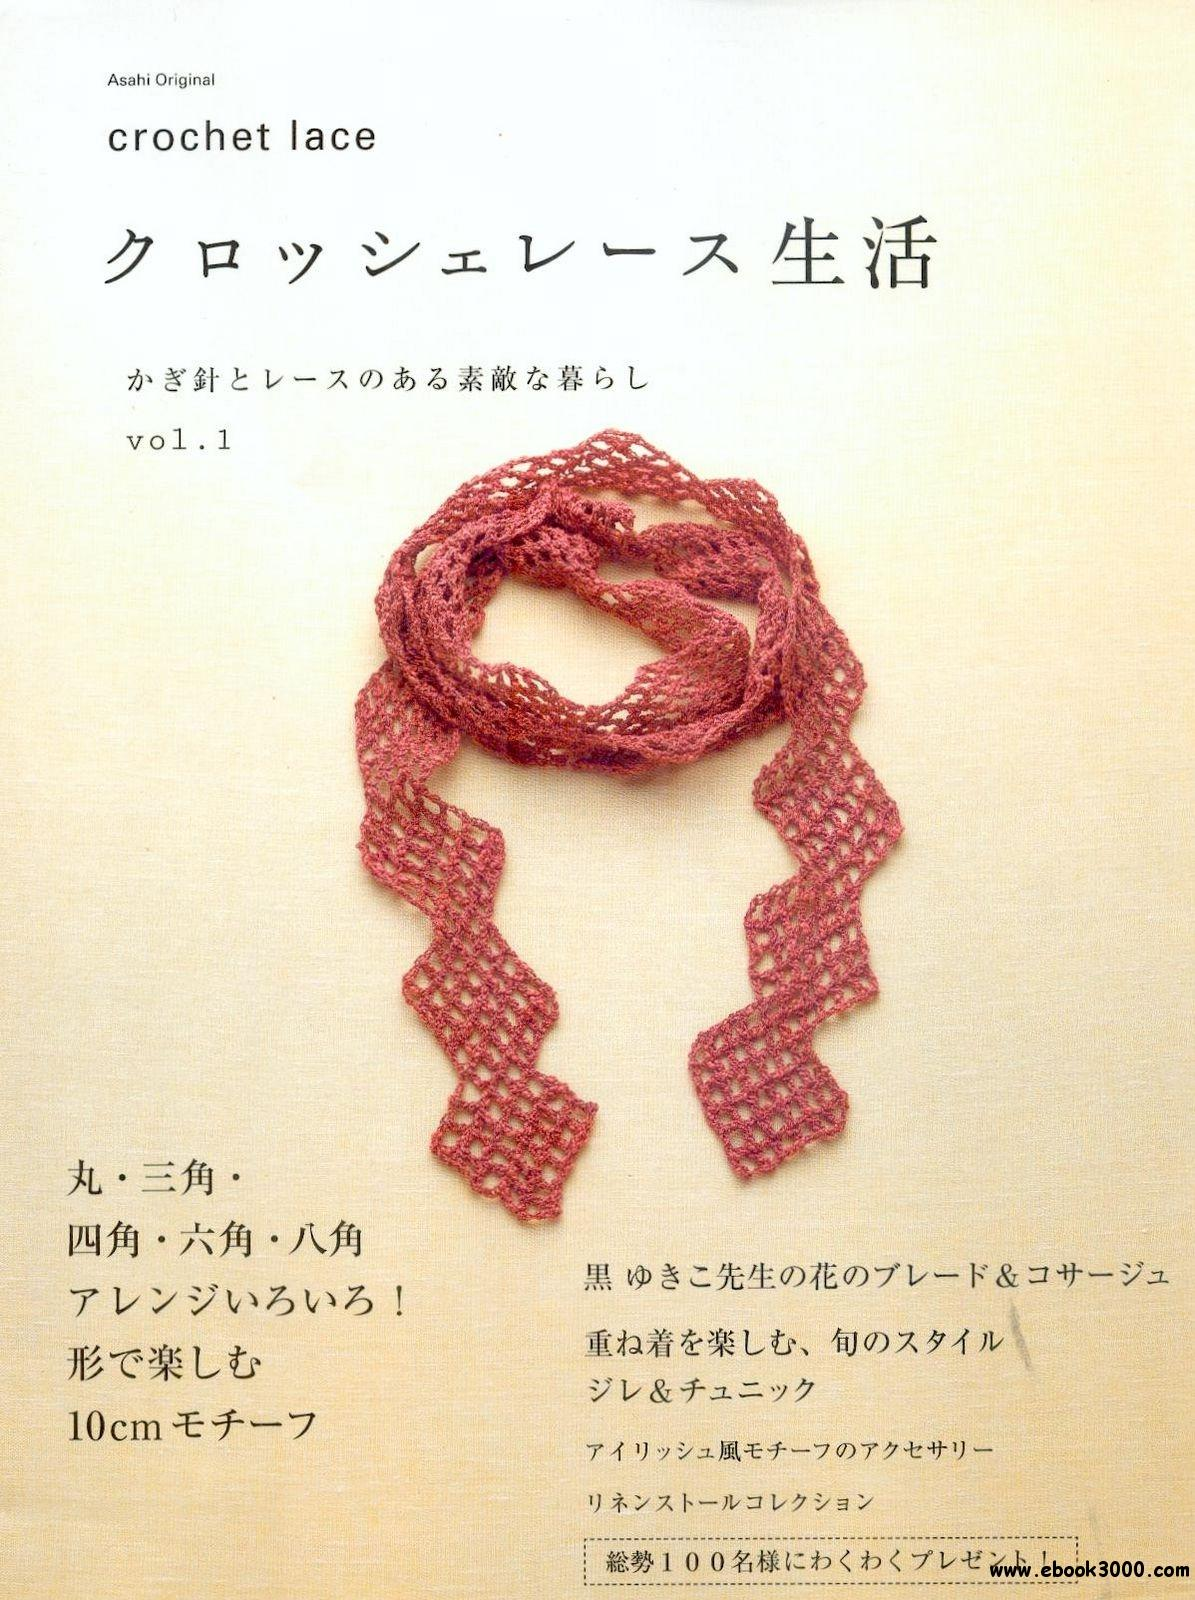 Crochet Lace - Asahi Original Vol.No 1 2010 free download